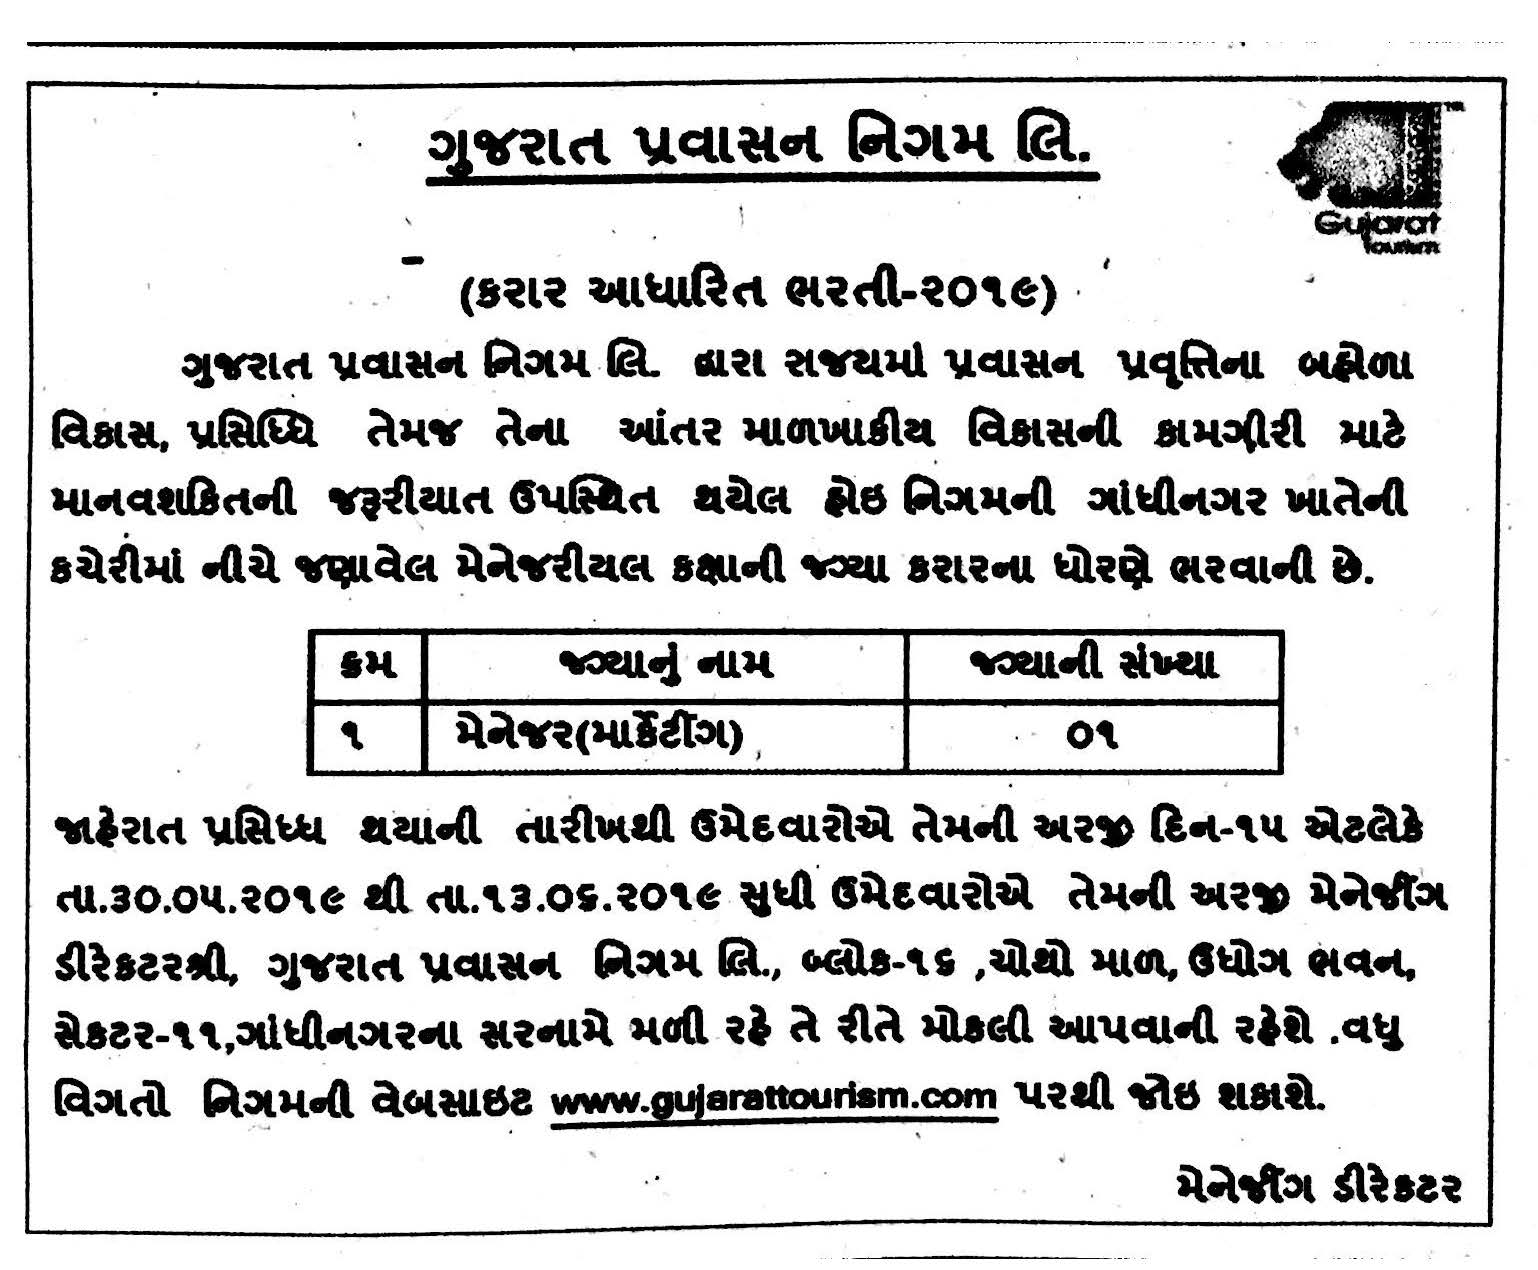 Gujarat Tourism Recruitment for Manager (Marketing) Post